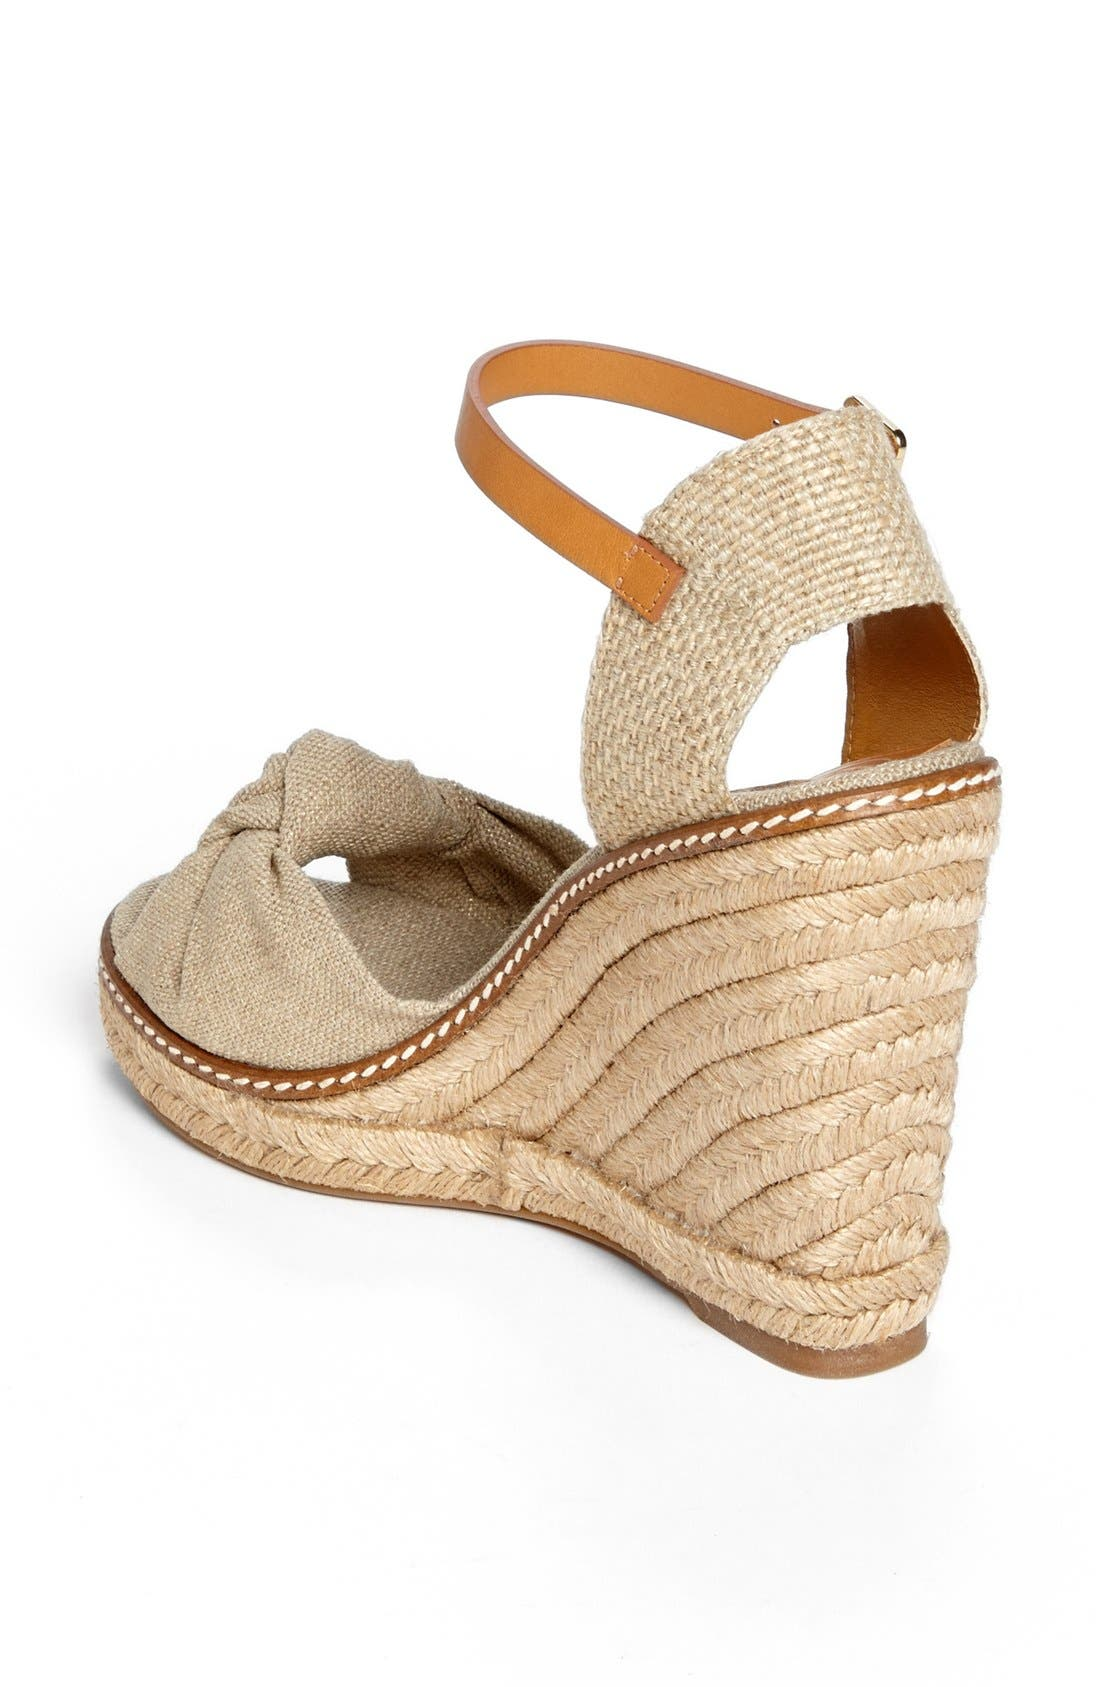 Alternate Image 2  - Tory Burch 'Macy' Leather Wedge Espadrille Sandal